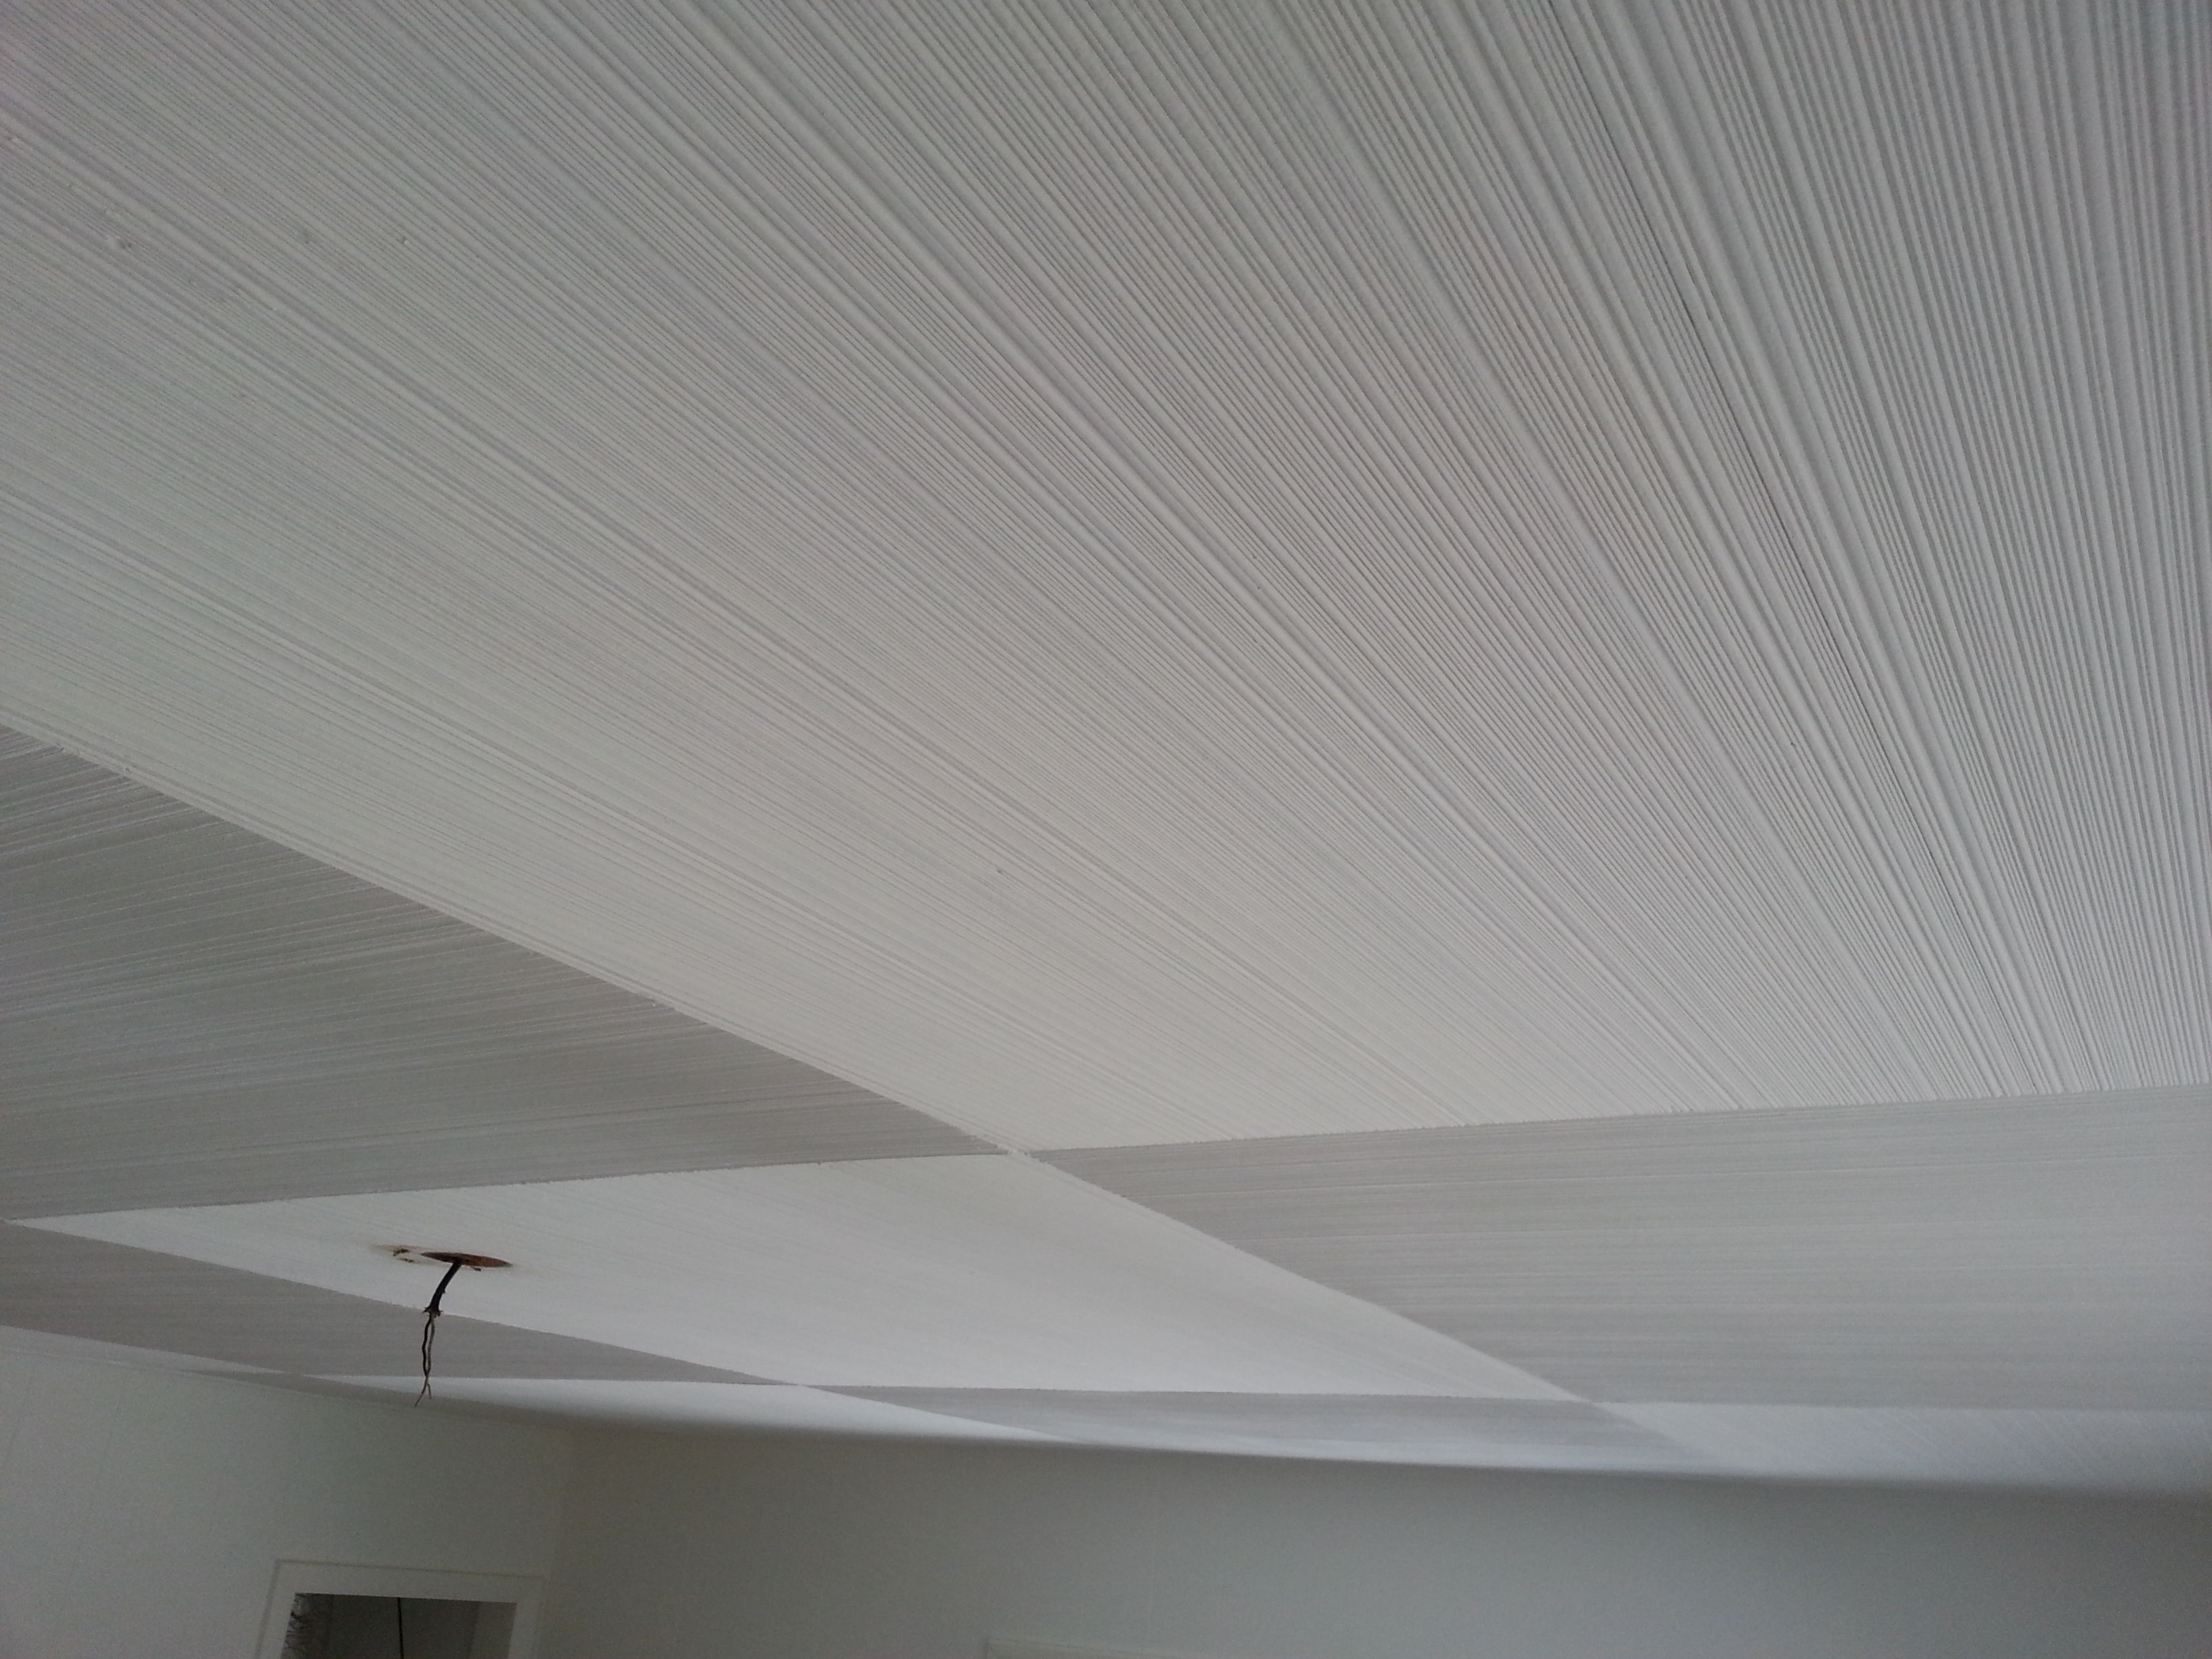 Weldtex ceiling tiles examples of weldtex use aka combed or weldtex ceiling tiles dailygadgetfo Choice Image